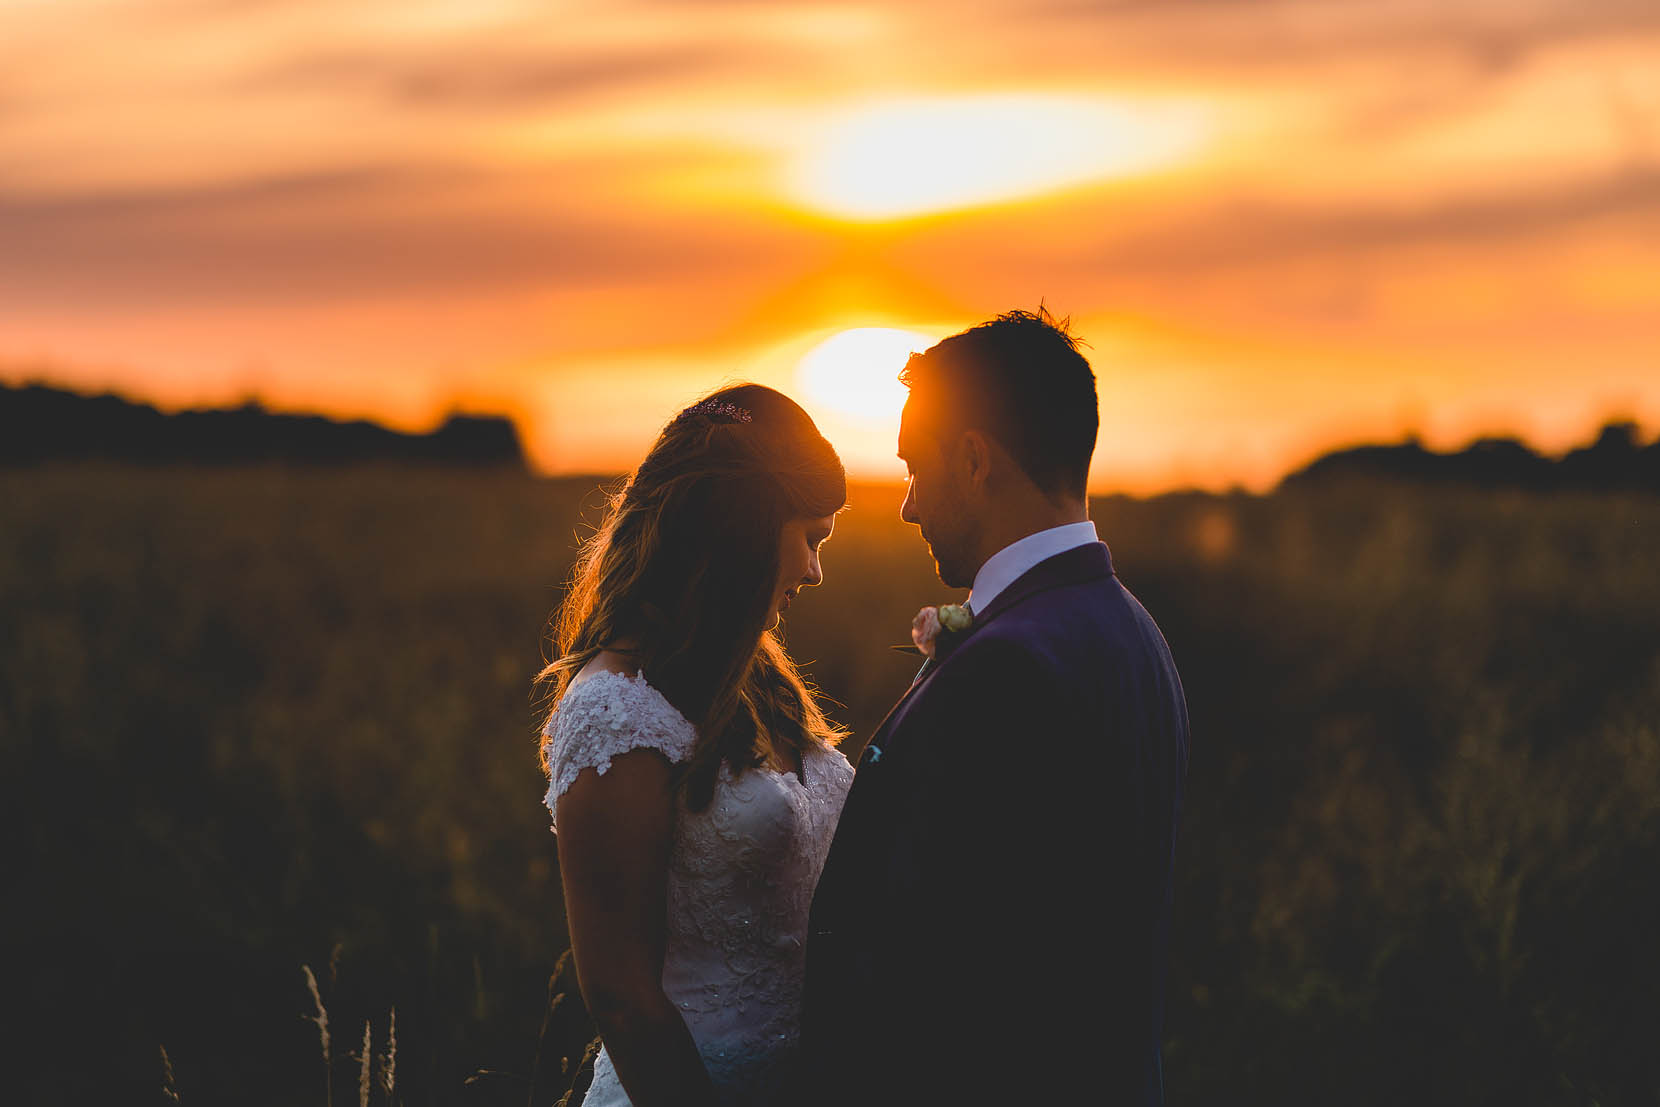 Michael & Philippa just married snuggle at sunset in ranwroth, norfolk